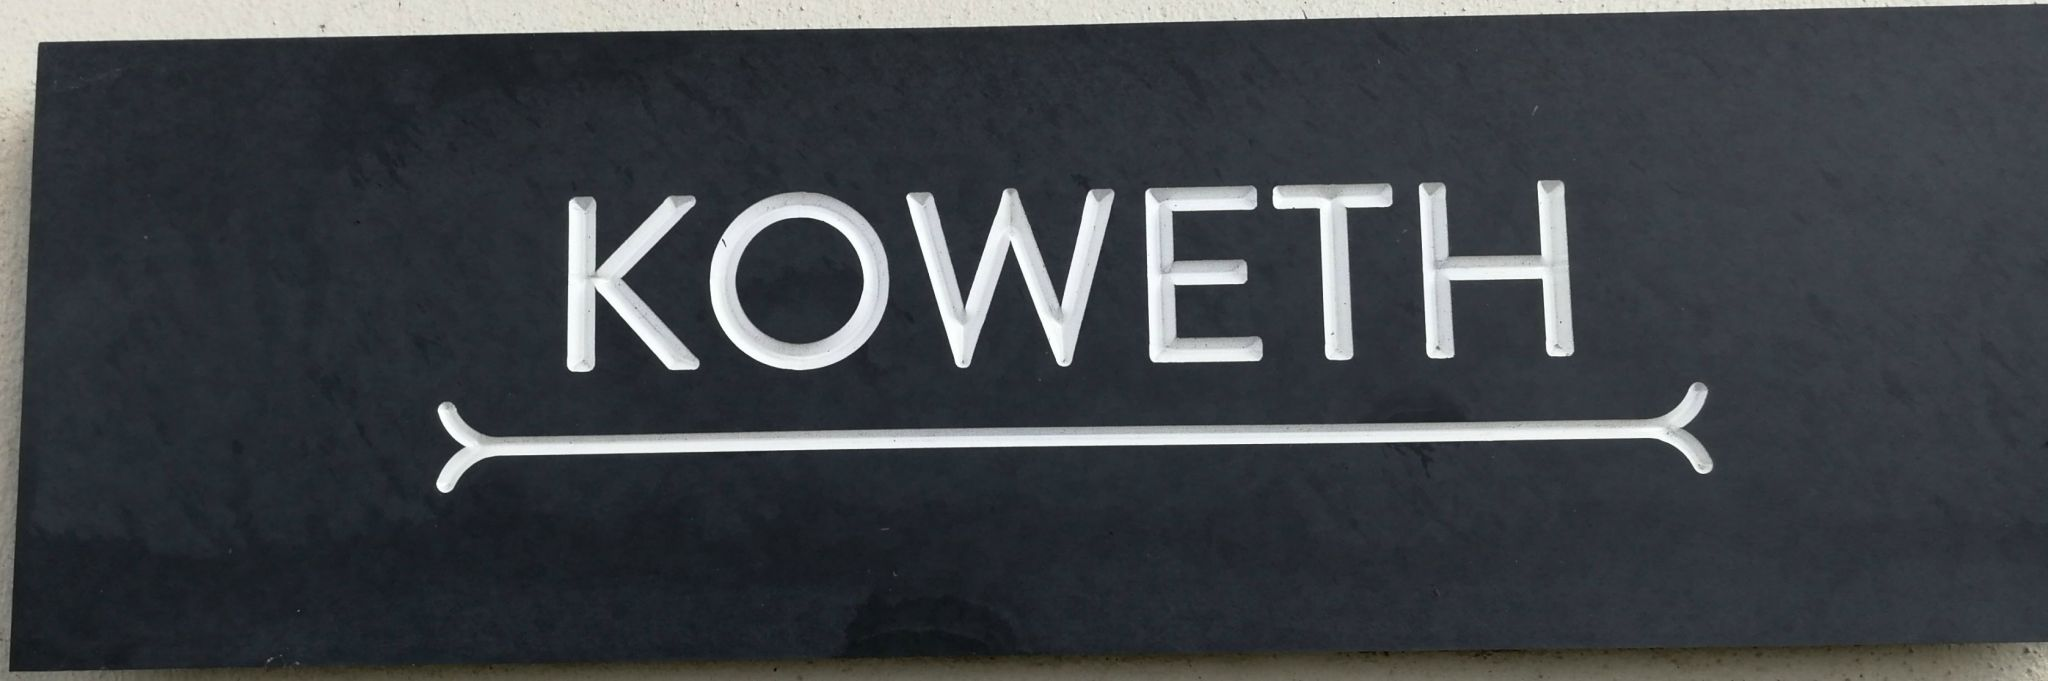 Koweth Cottage, The Park, Mawgan Porth